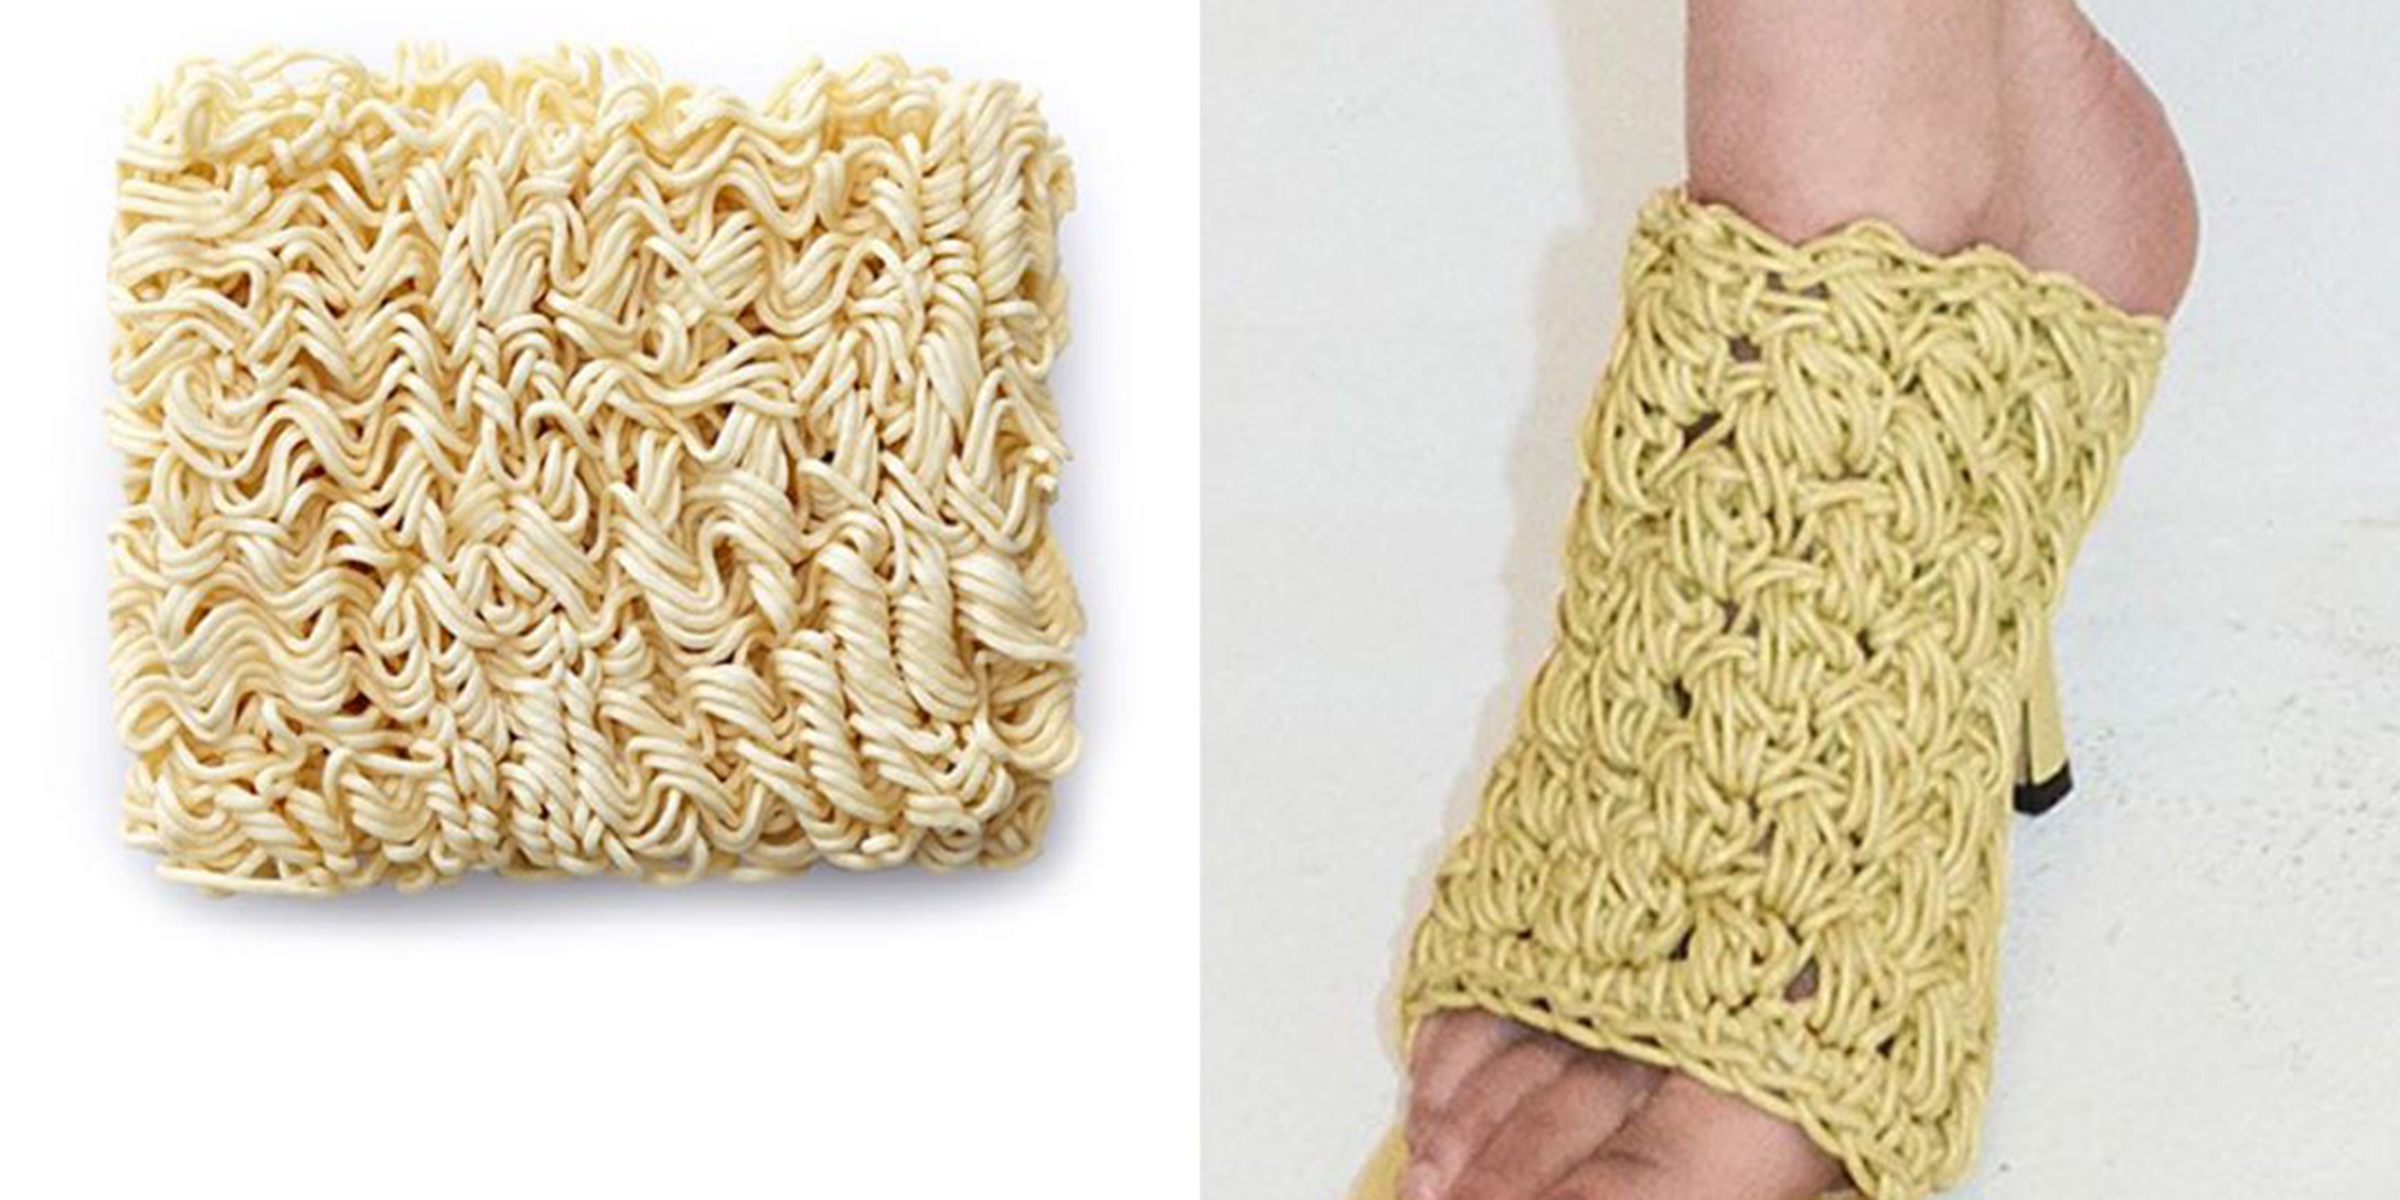 Runway snack? These high-fashion shoes are being compared to ramen noodles